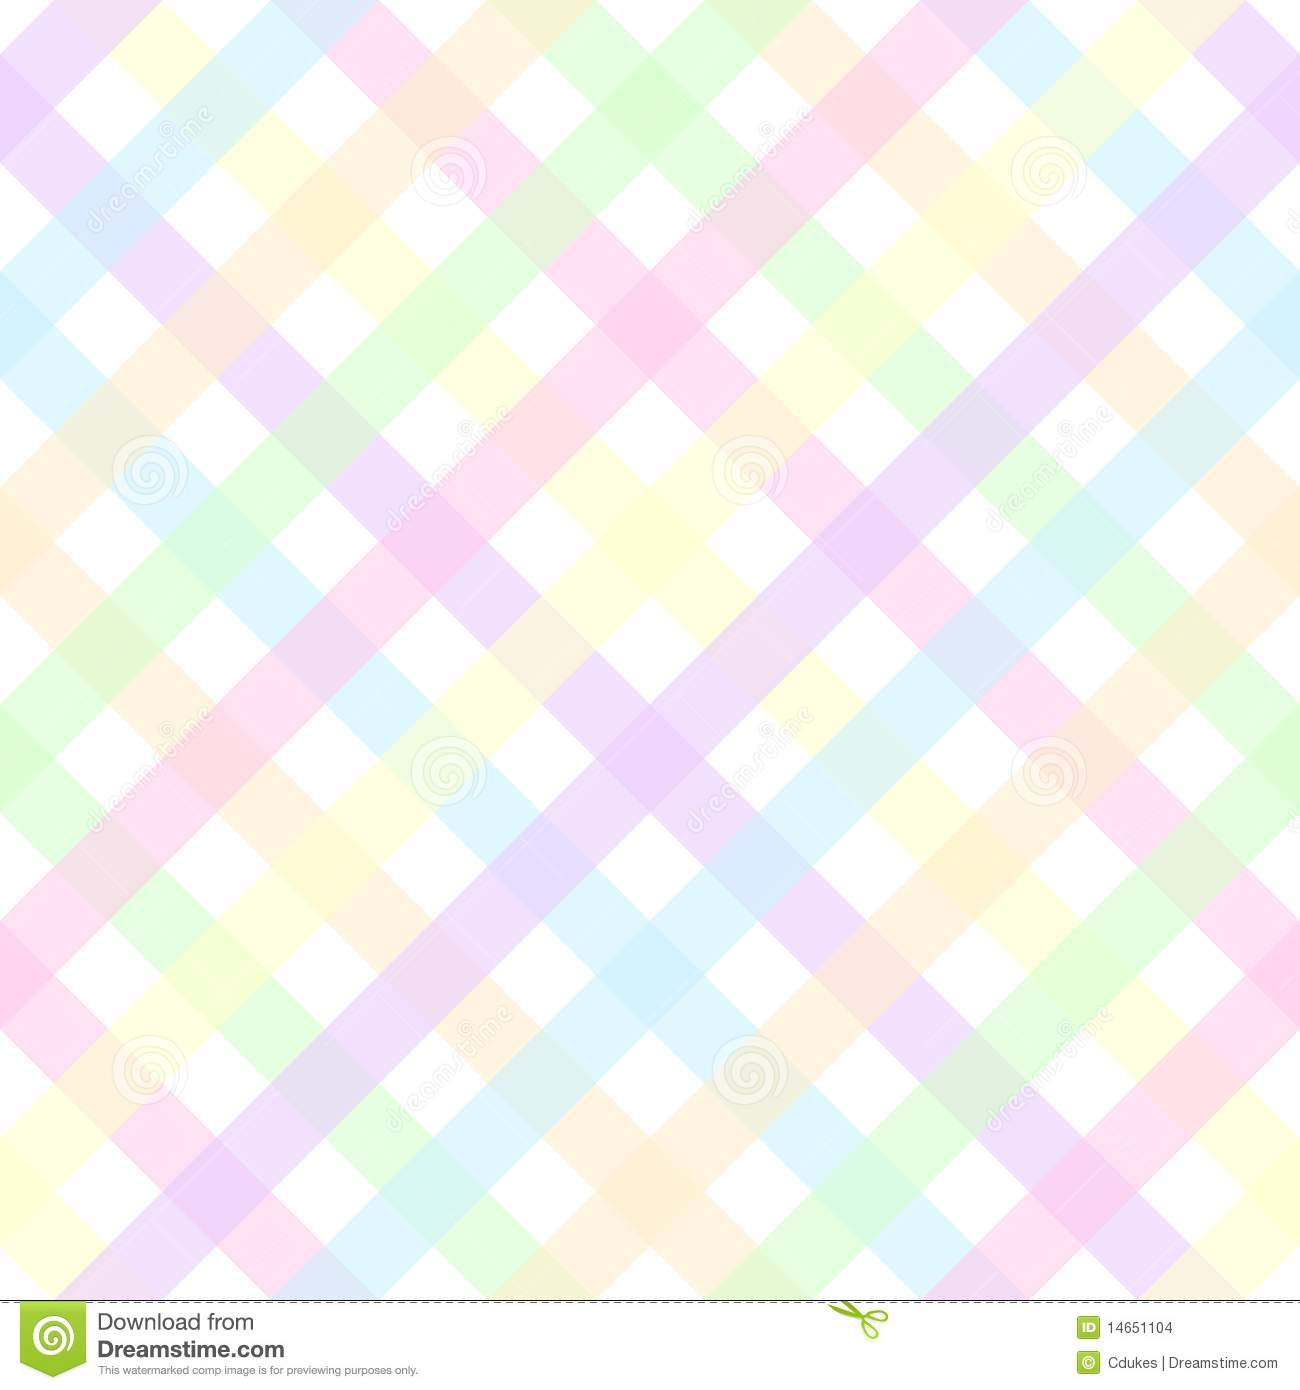 Cute Pattern Background Wallpaper Pastel Plaid Stock Images Image 14651104